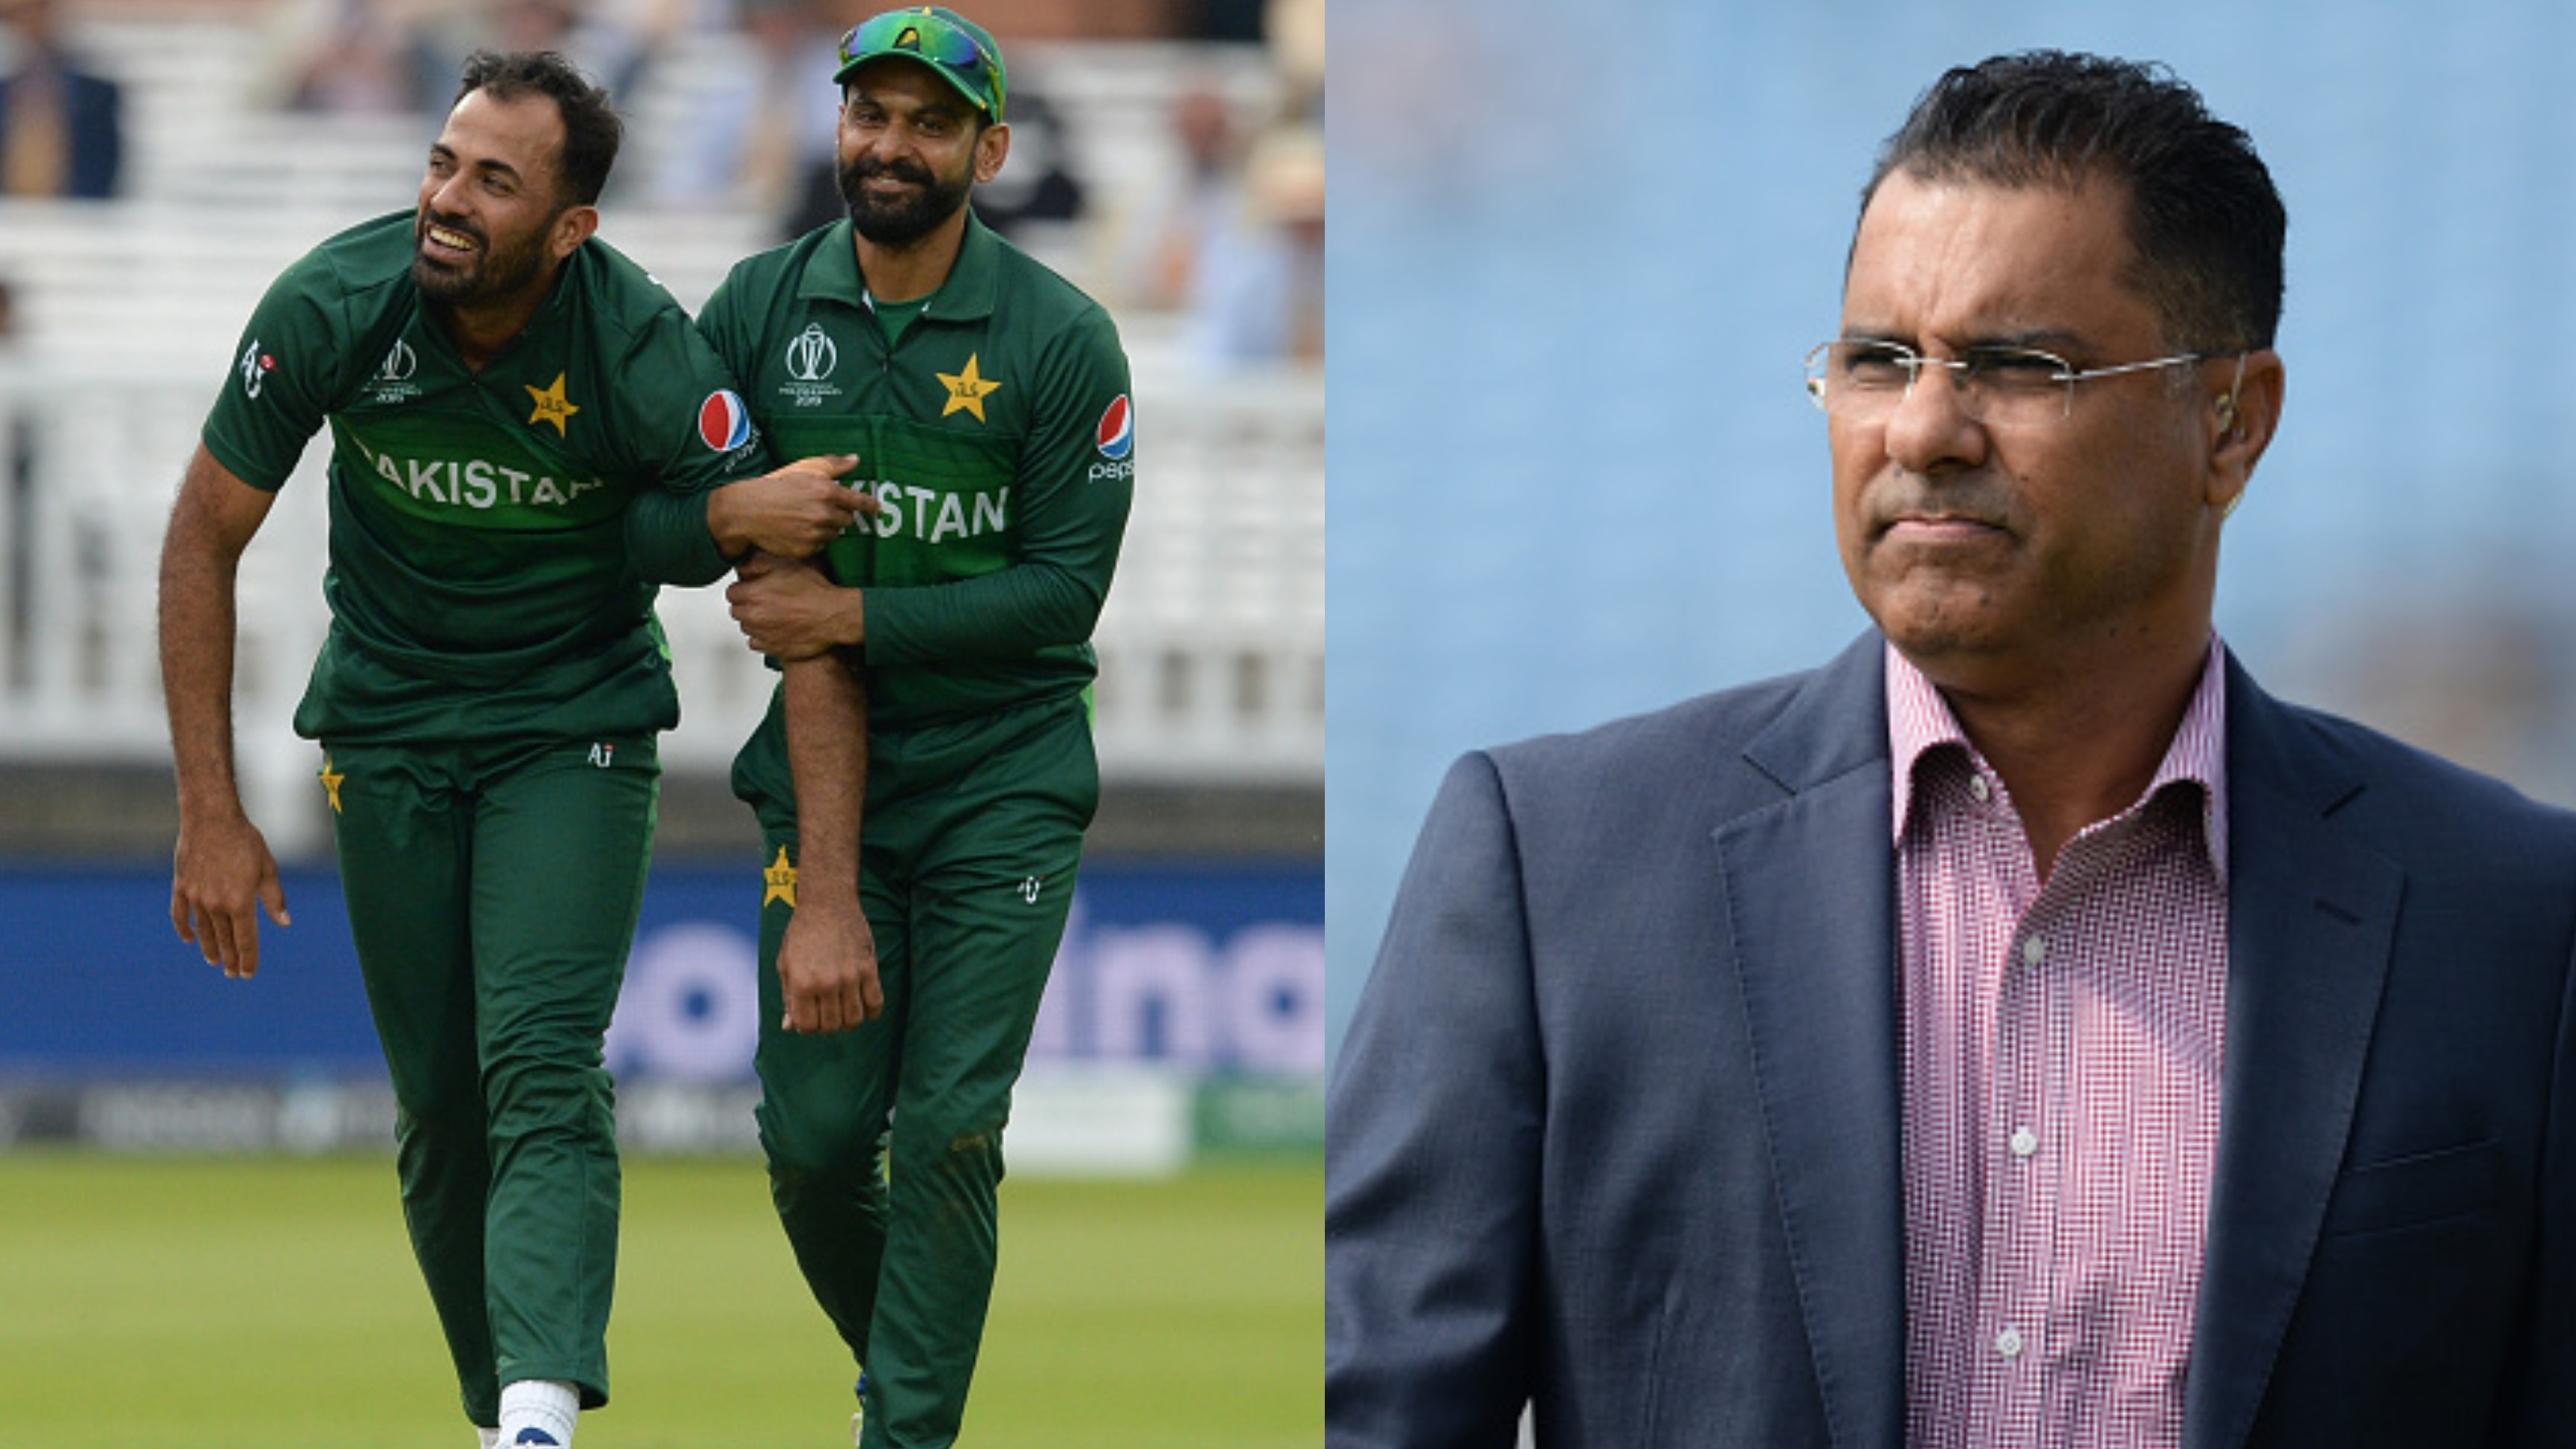 Waqar Younis takes a dig at senior Pakistan players for 'lingering on in their careers'